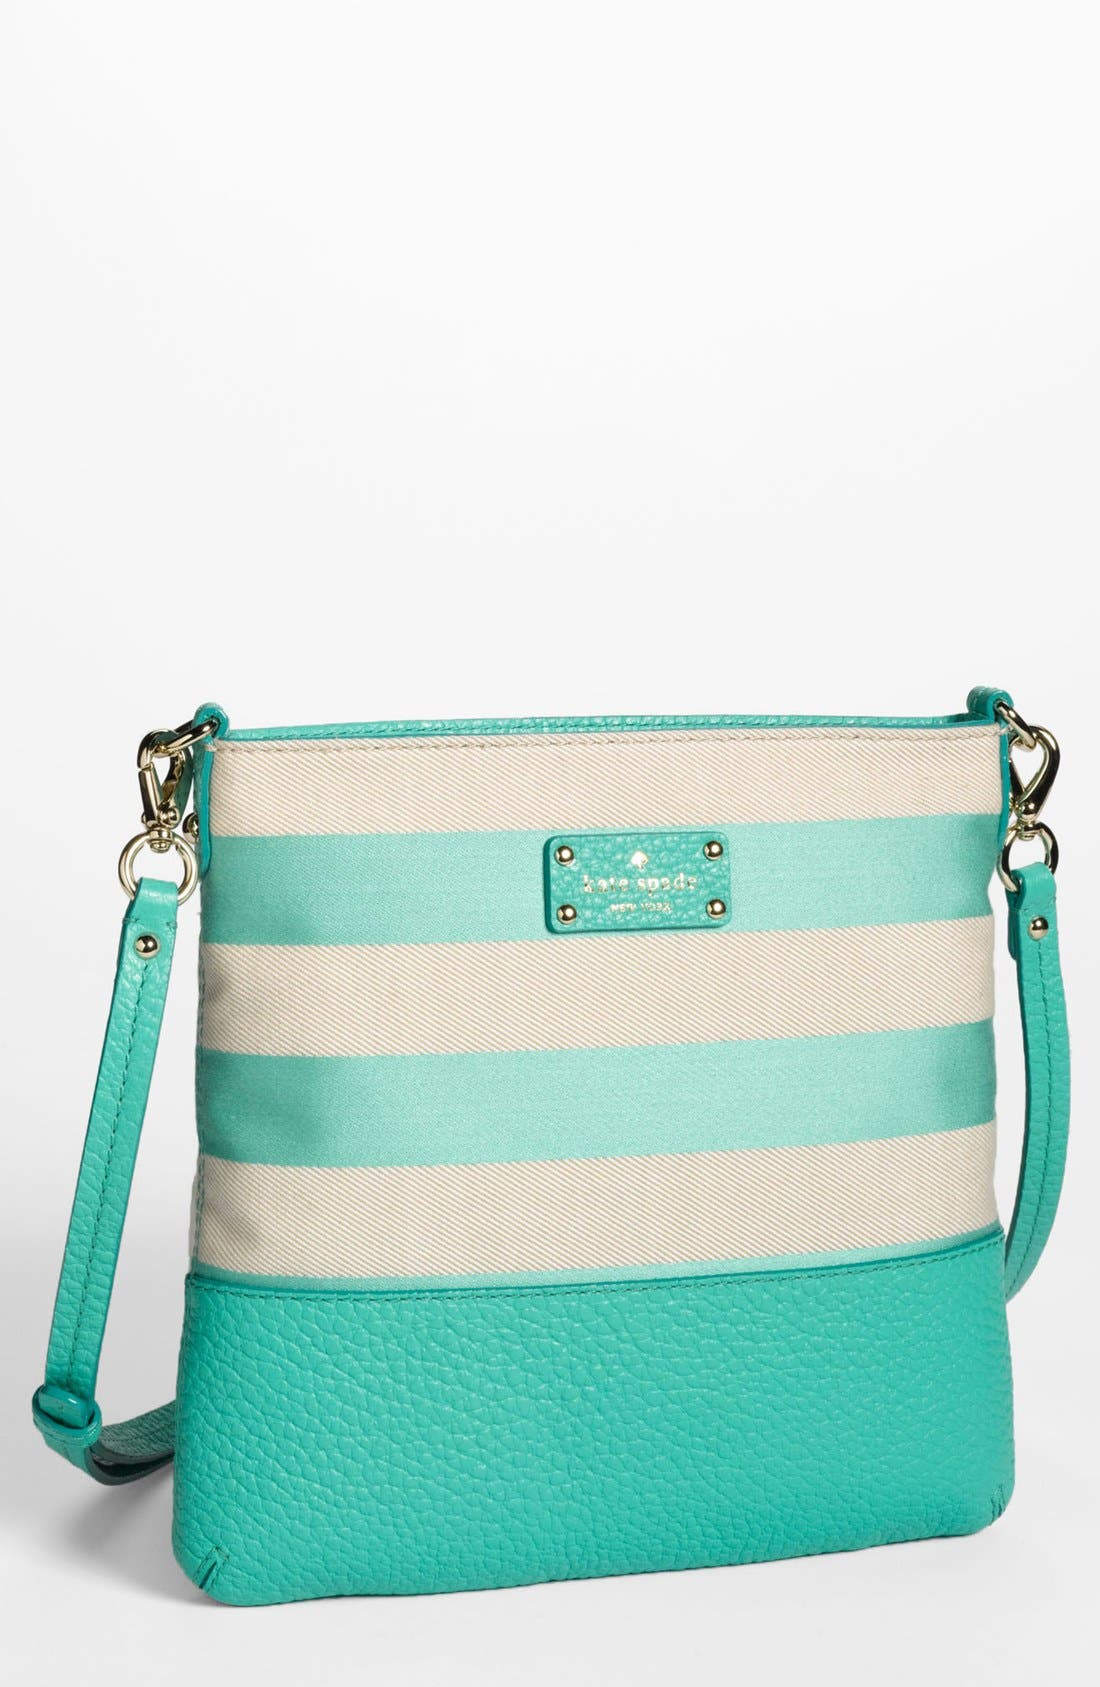 Alternate Image 1 Selected - kate spade new york 'grove court stripe - cora' crossbody bag